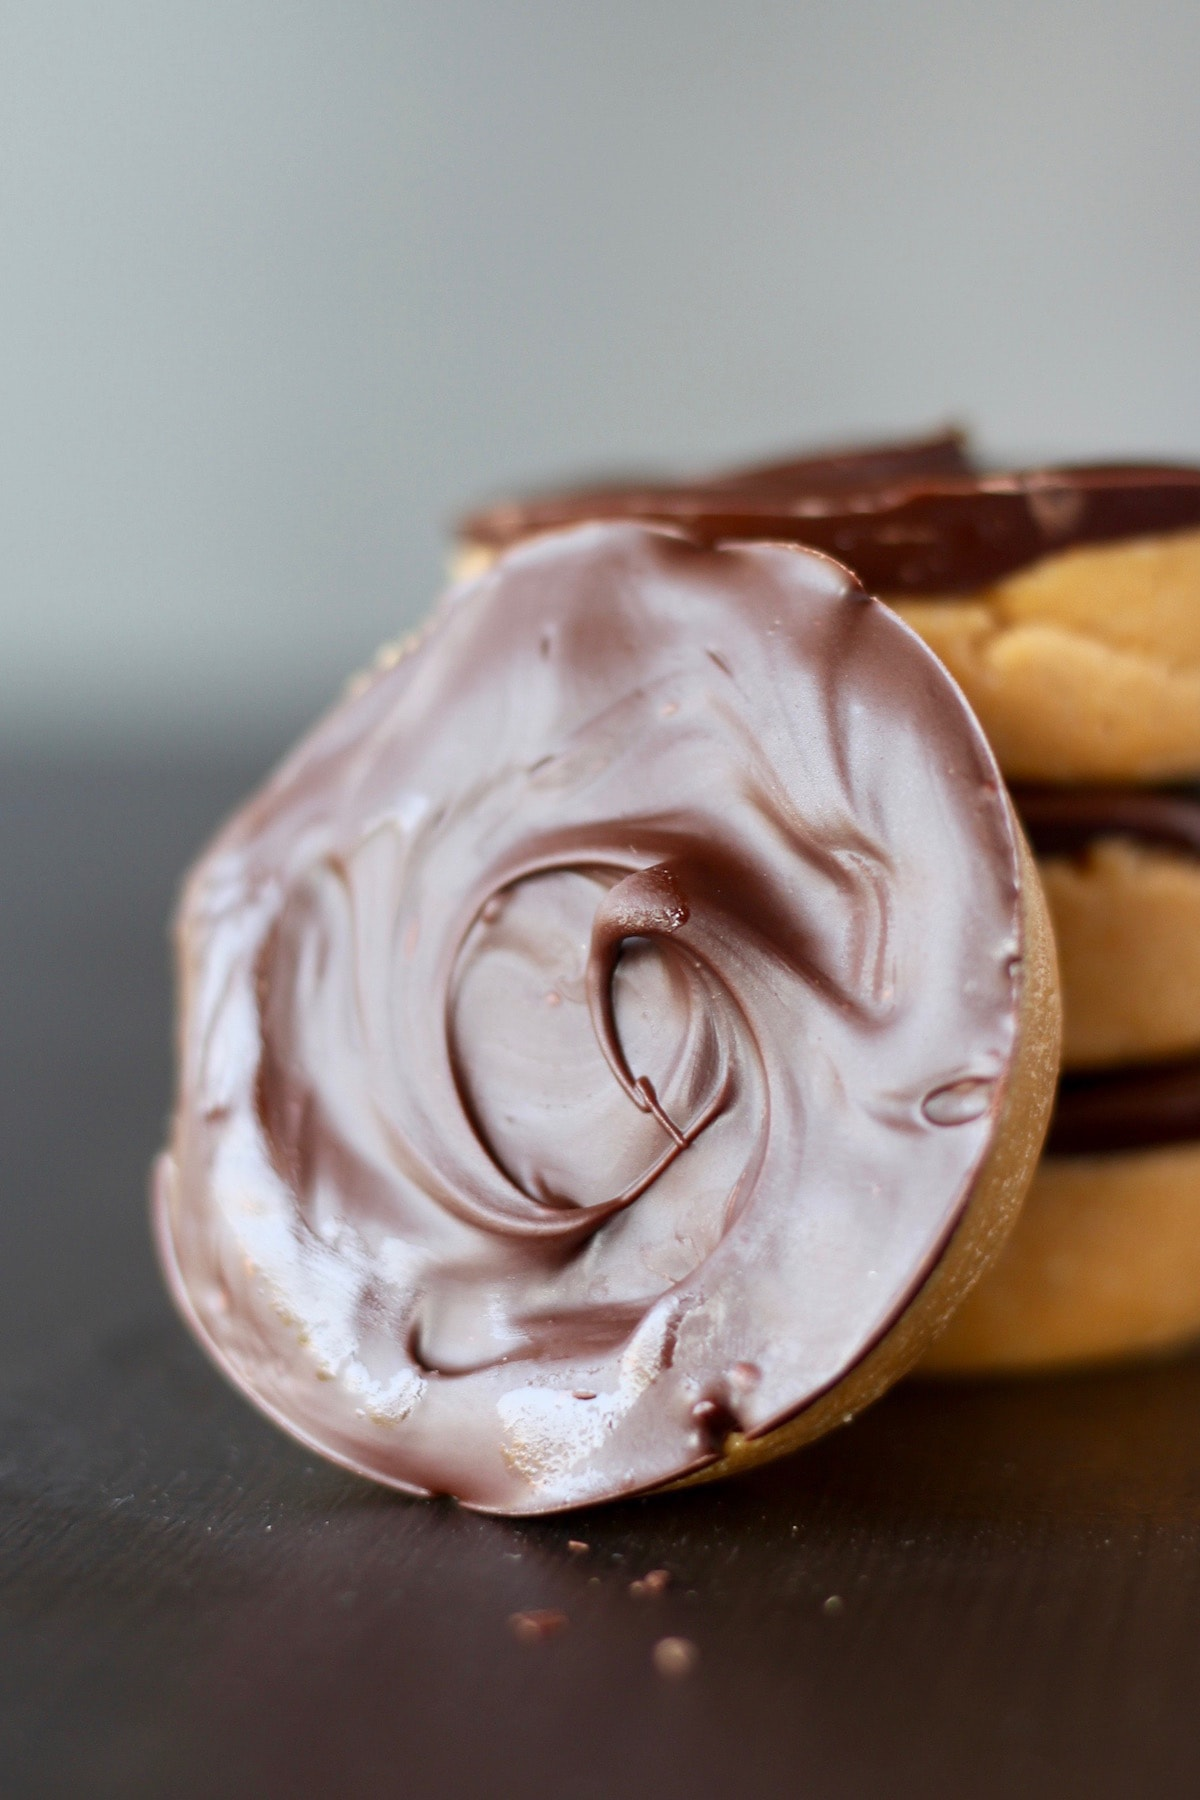 Swirled chocolate coating on a peanut butter cup